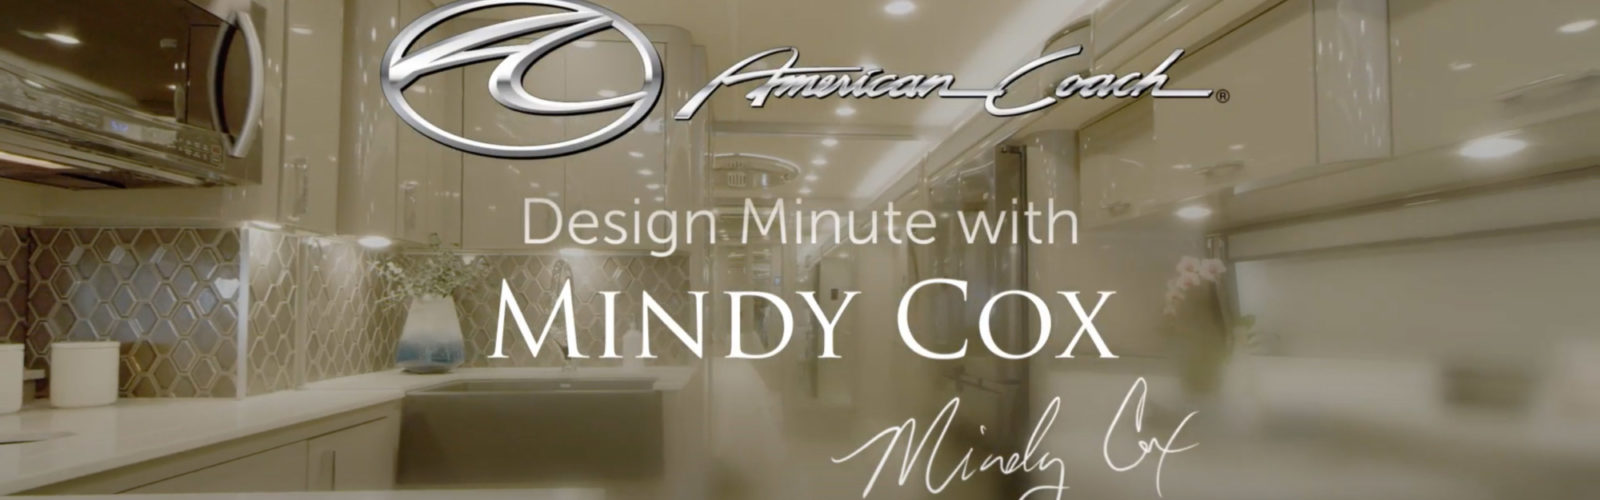 Design Minute with Mindy Cox Episode 2